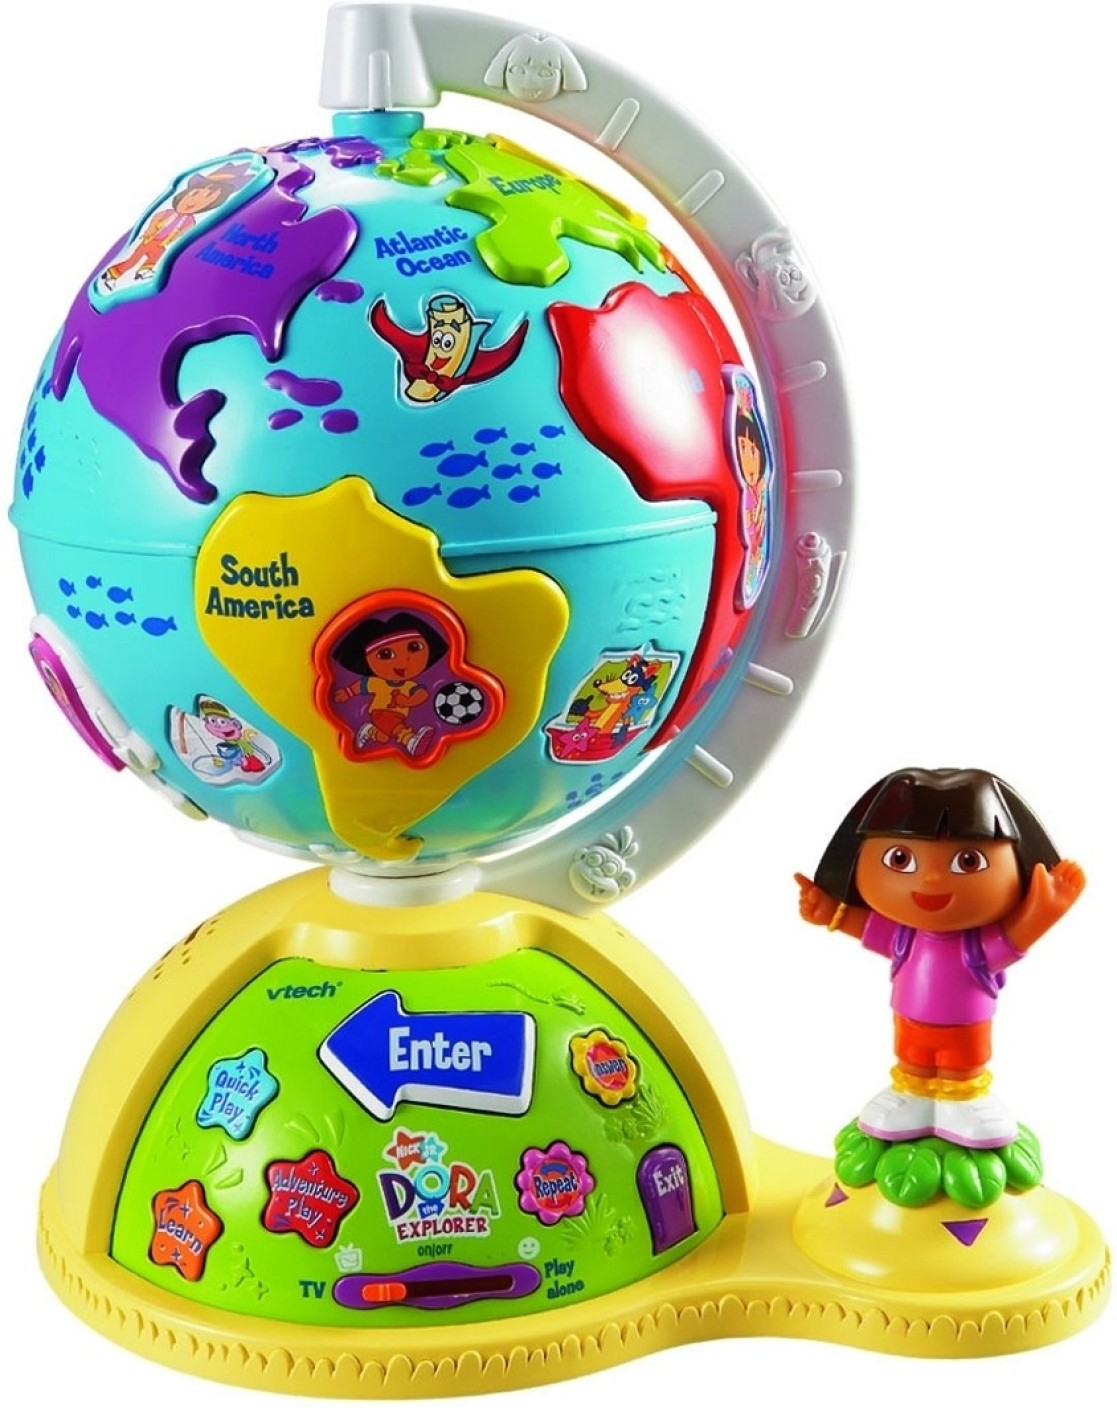 VTech Spin & Discover 7